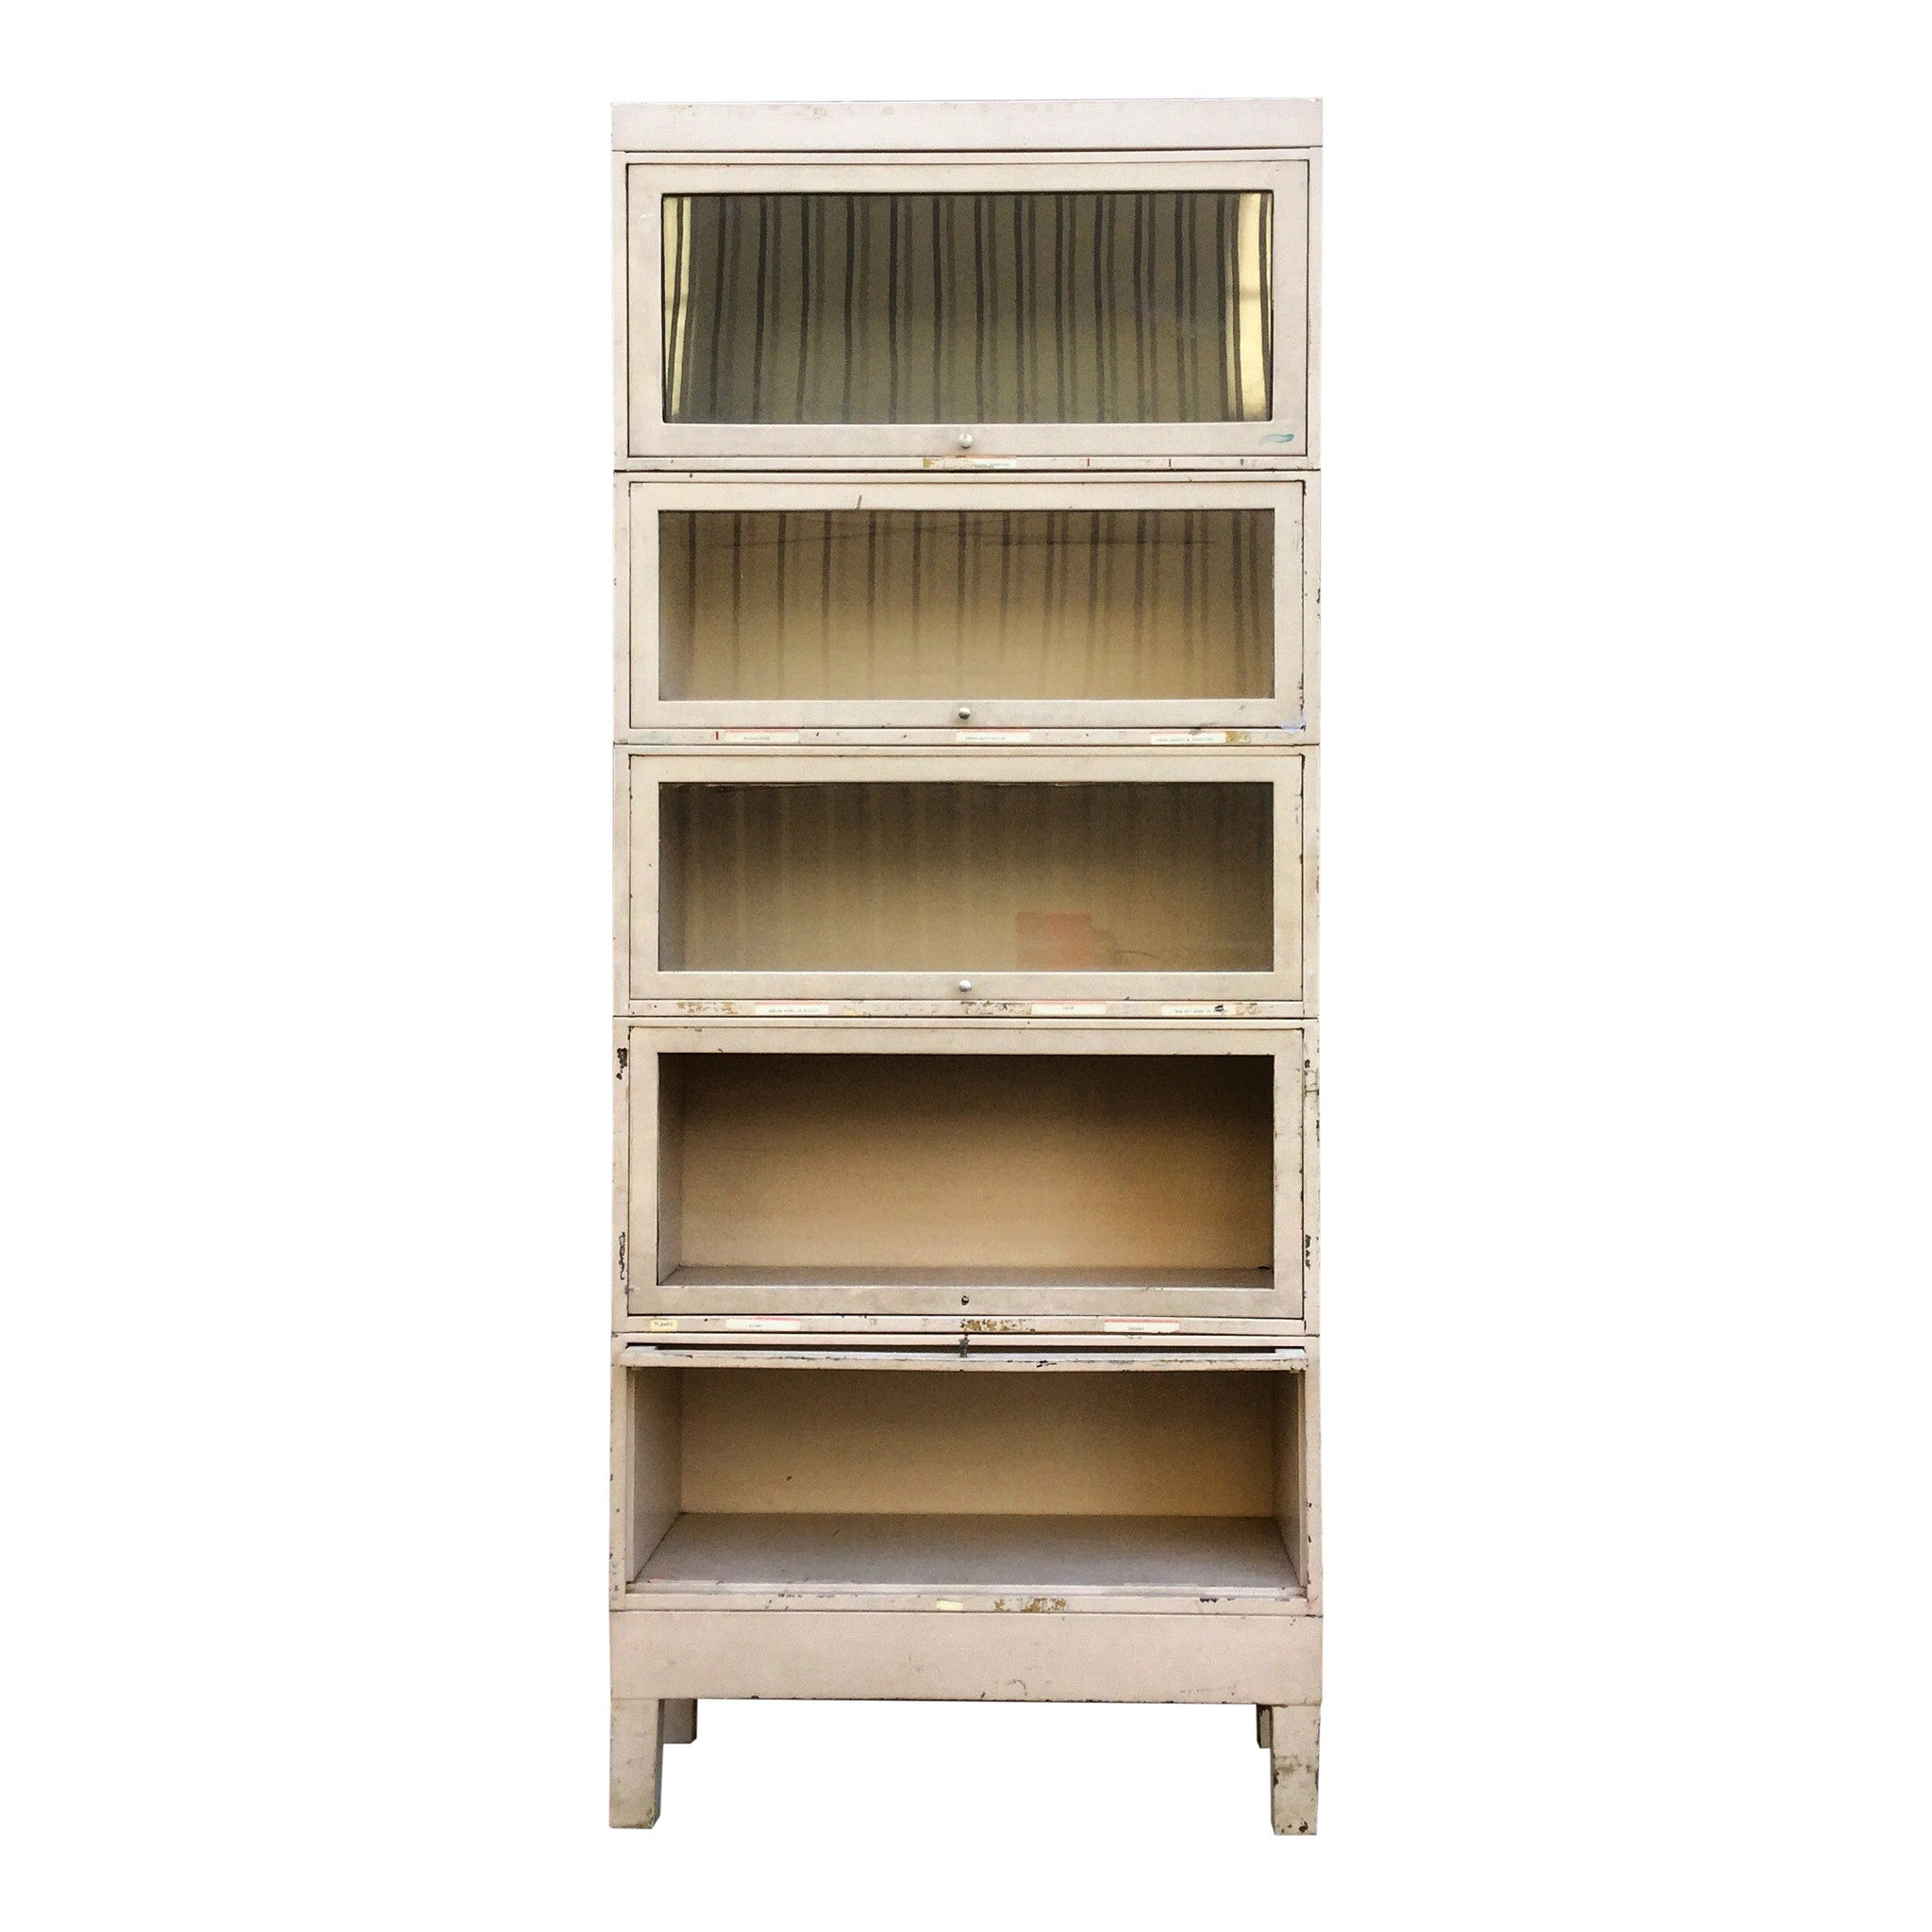 s the barrister moving whisperer bookcases bookcase barristers videos wood